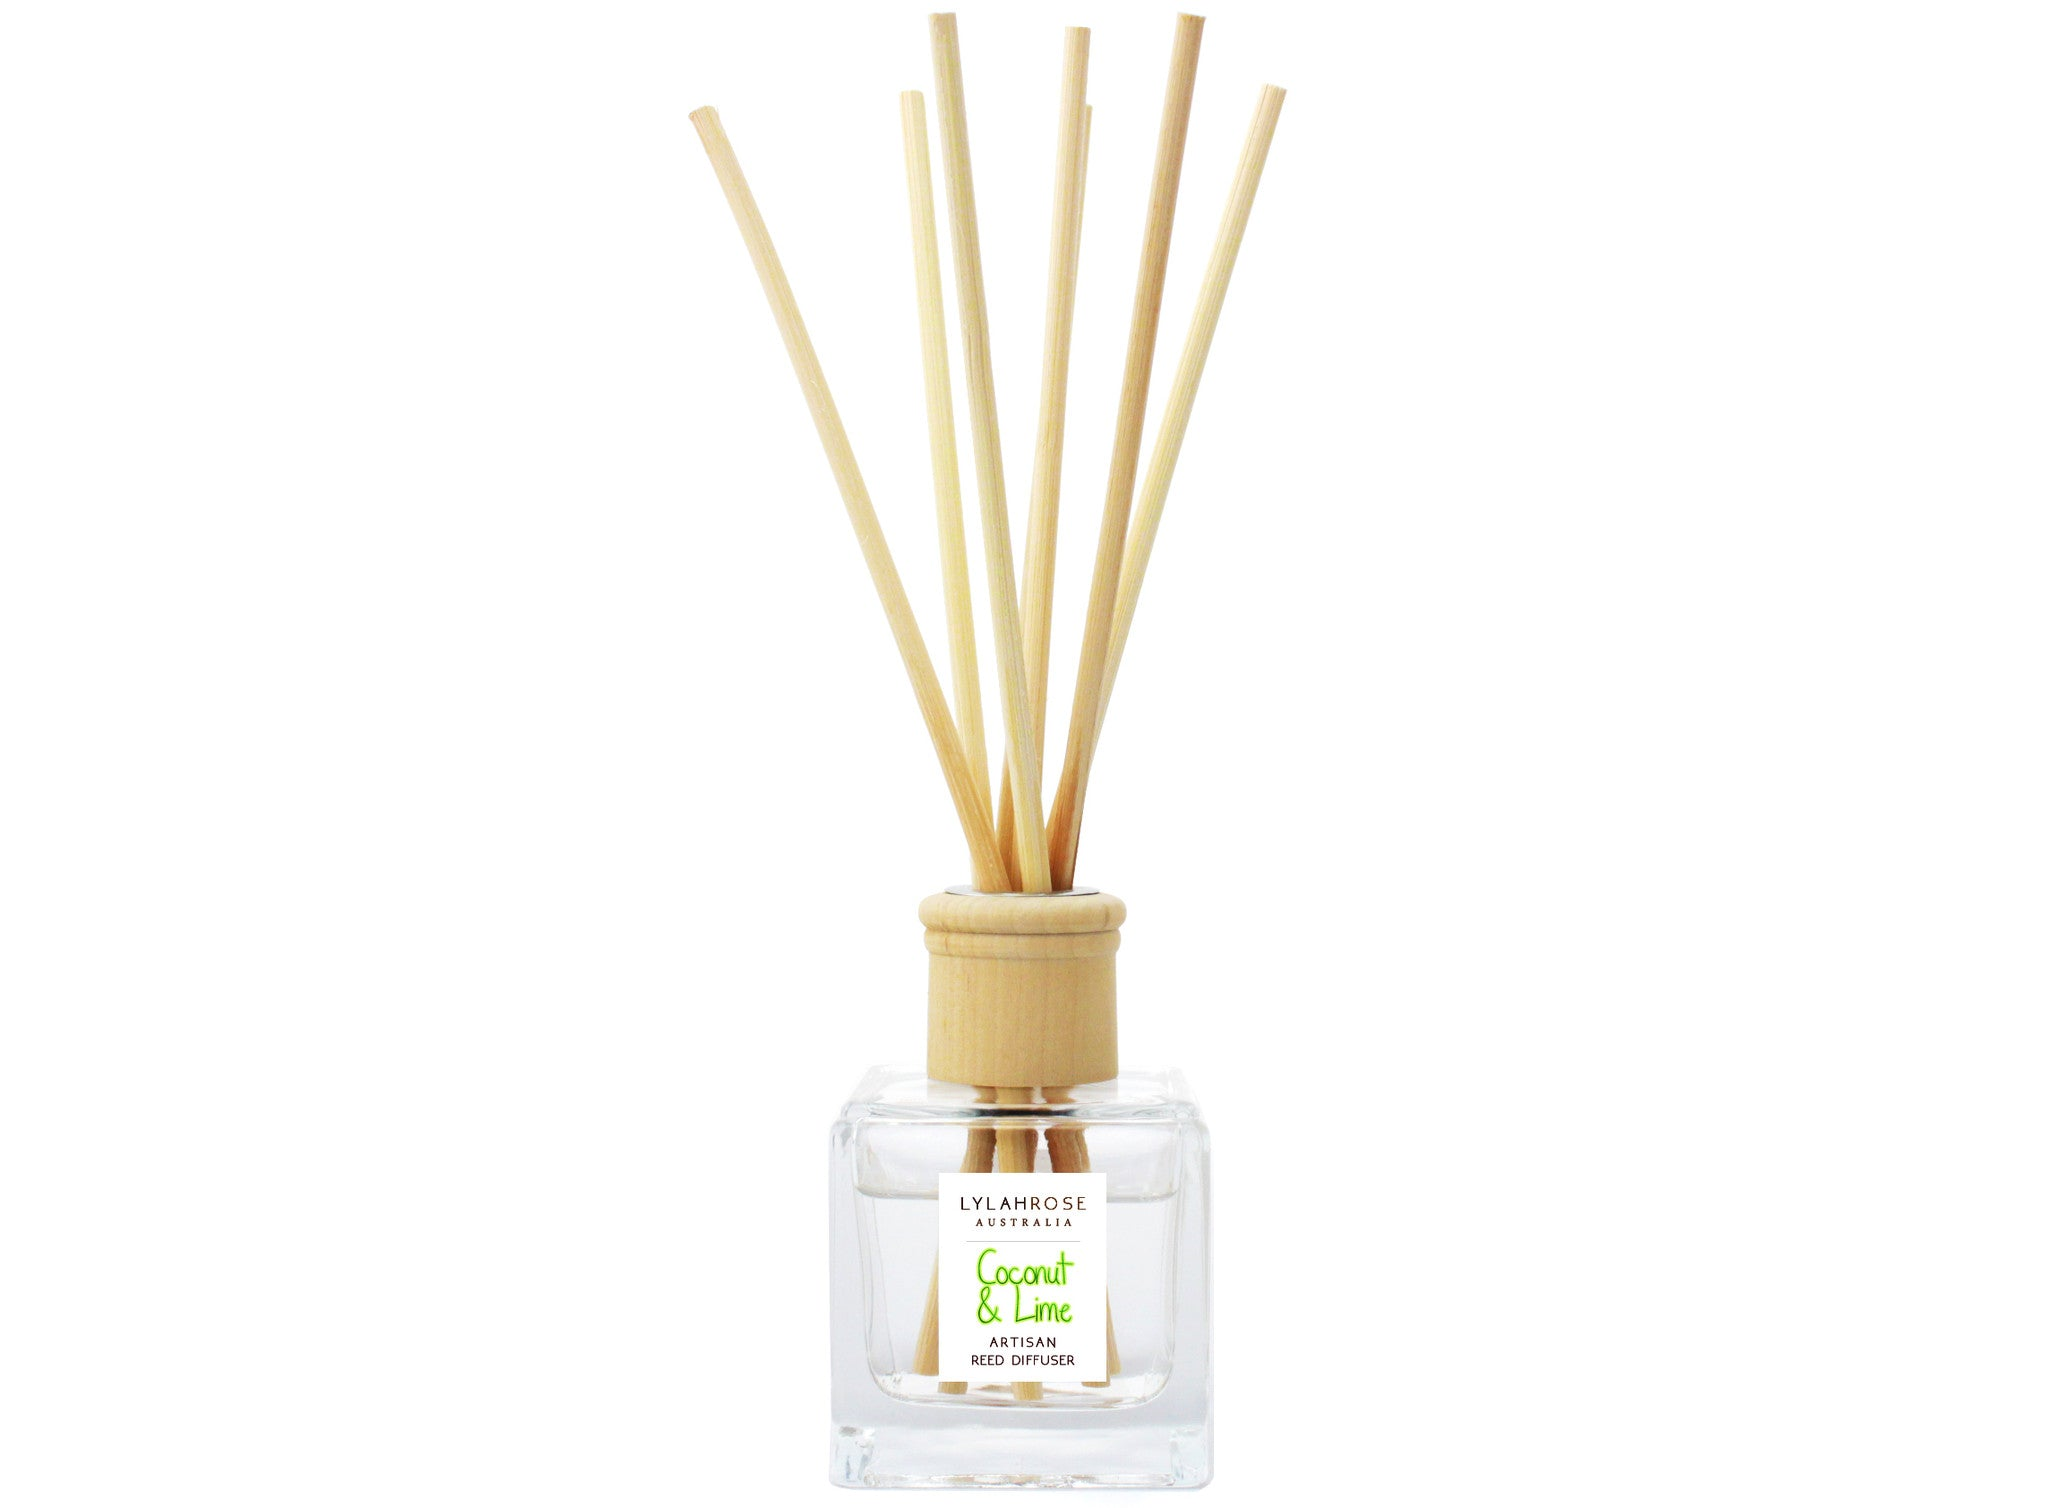 coconut-lime-140ml-reed-diffuser